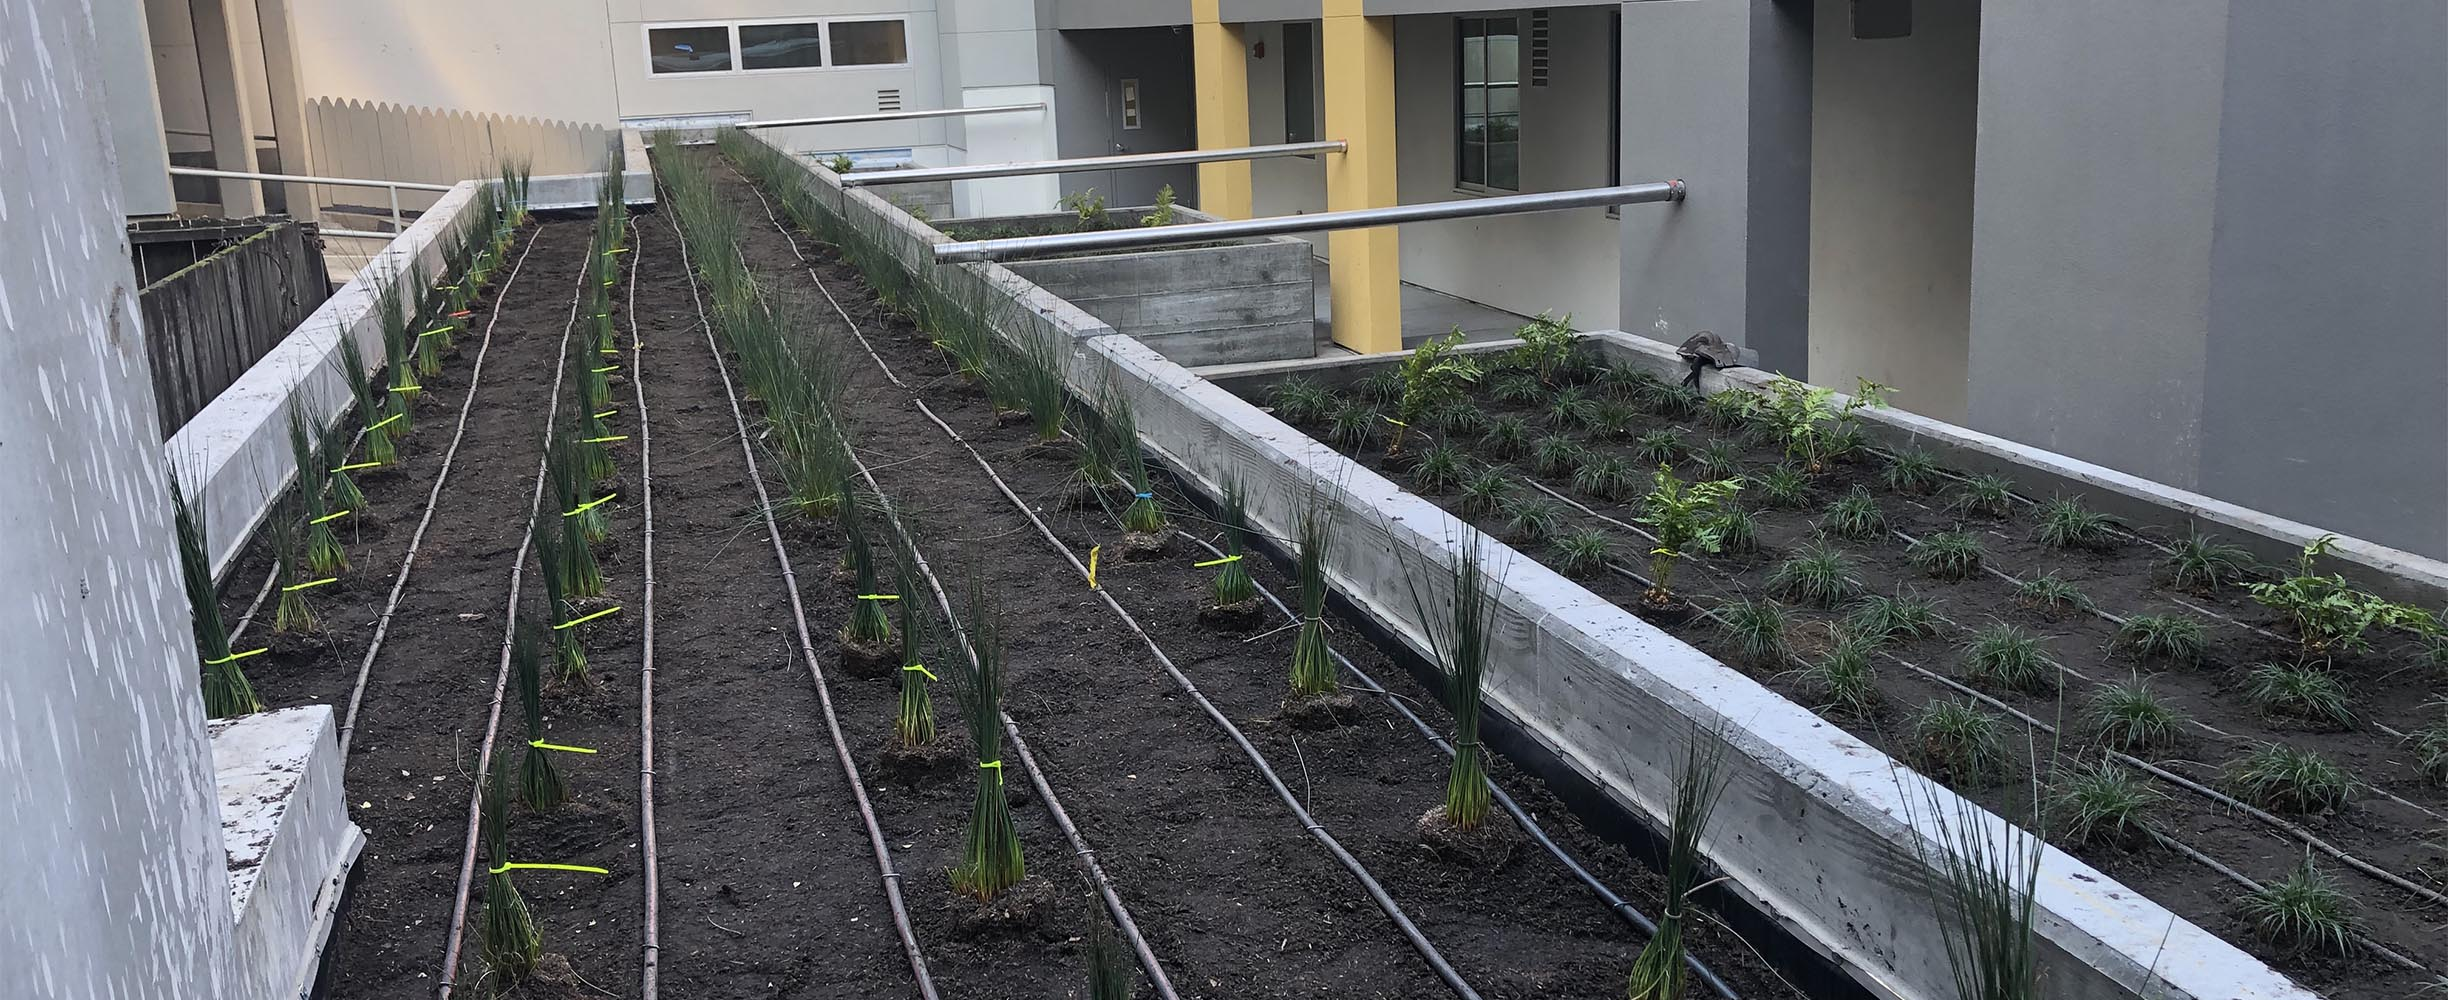 Commercial landscaping, plants beds in balconys for a apartment building in San Francisco